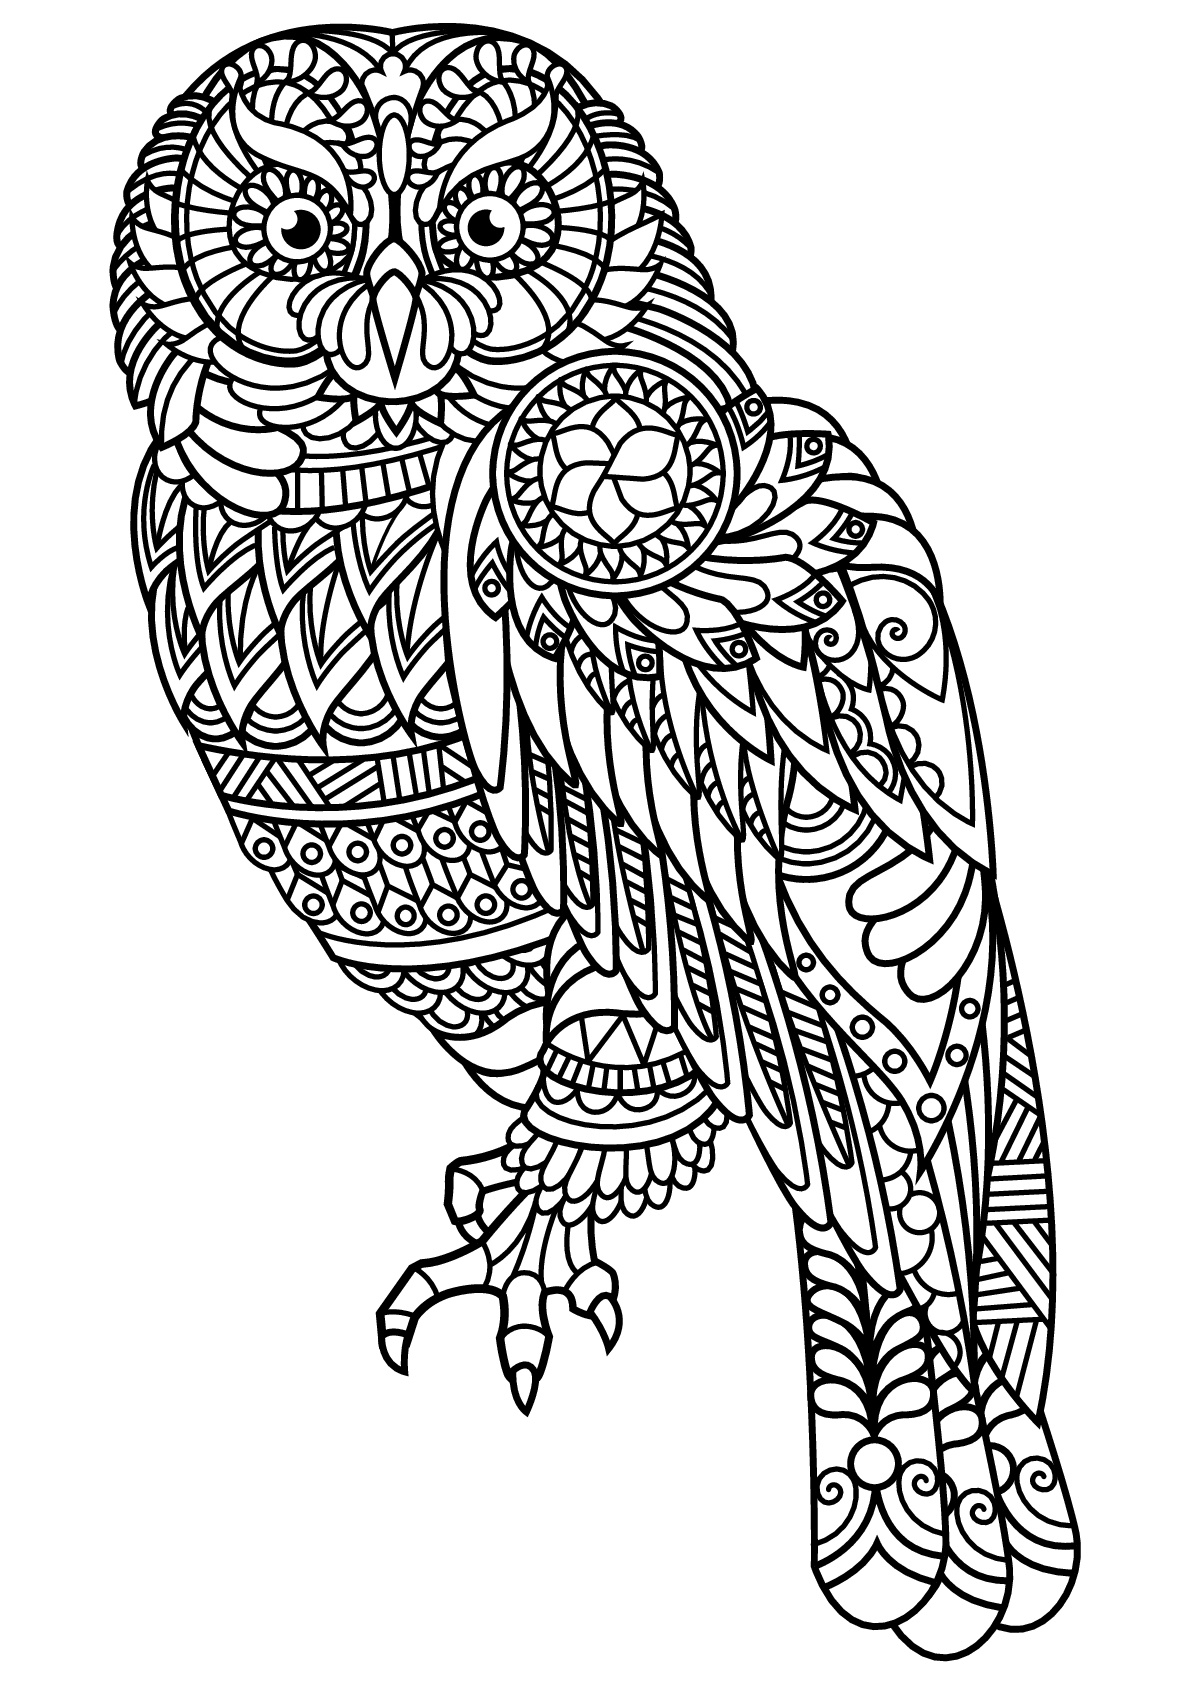 printable pictures to color spring coloring pages 2018 dr odd printable to pictures color